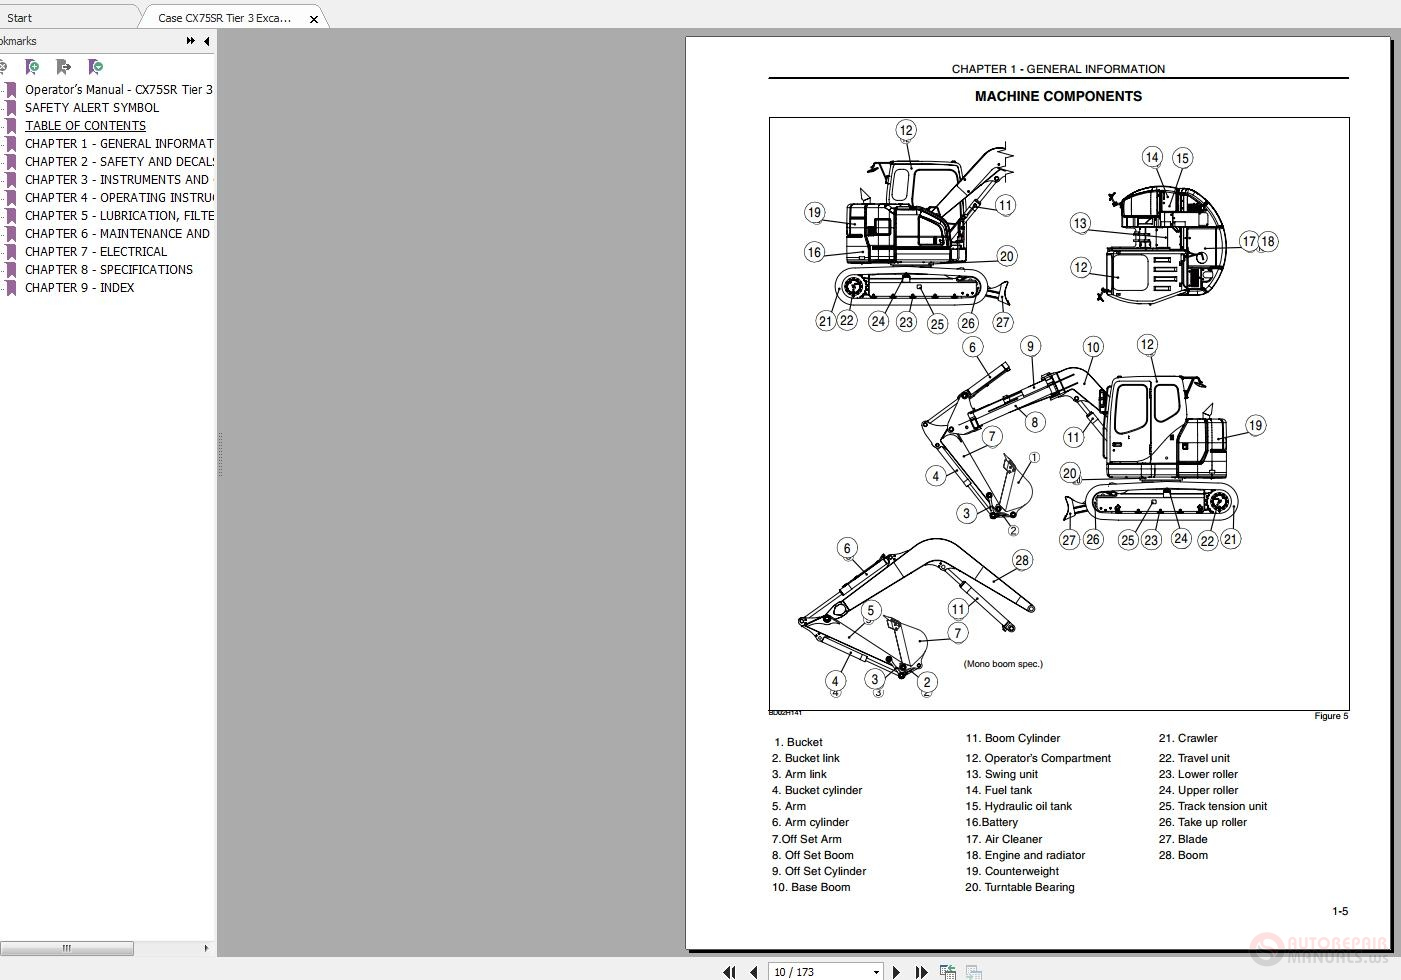 Case CX75SR Tier 3 Excavator Operators Manual | Auto Repair Manual